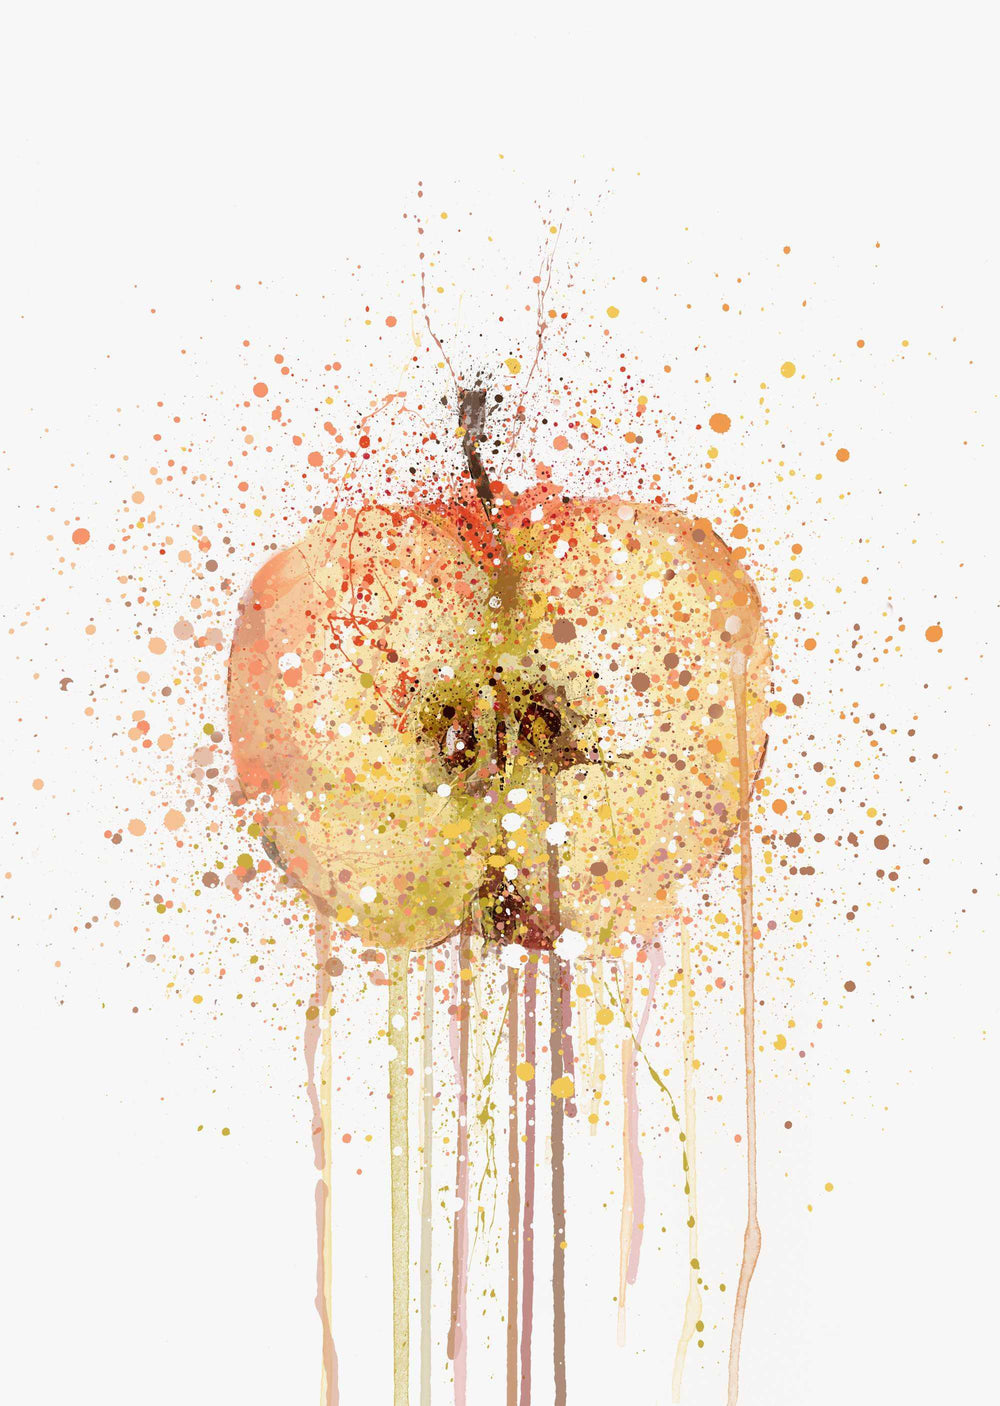 Apple Fruit Wall Art Print-We Love Prints